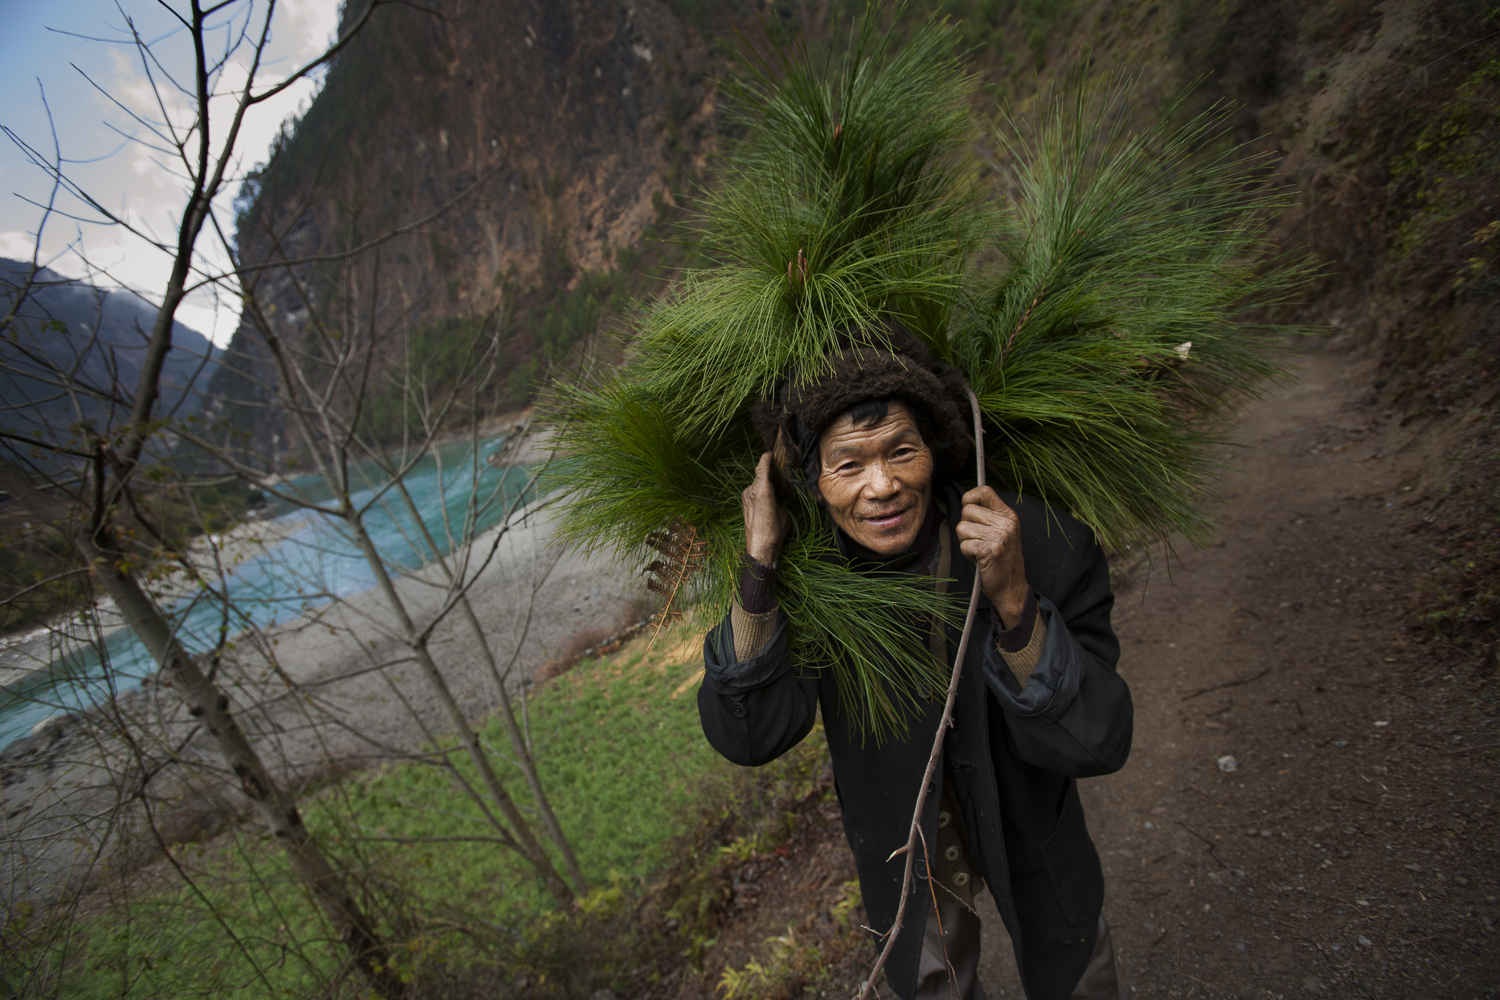 Wuli, Yunnan. A Tibetan man gathers pine needles for Buddhist rituals. While many Tibetans in this region have converted to Christianity they still maintain some of their traditional culture. The pines needles are put around Buddhist shrines and decorate the entry way to their homes.